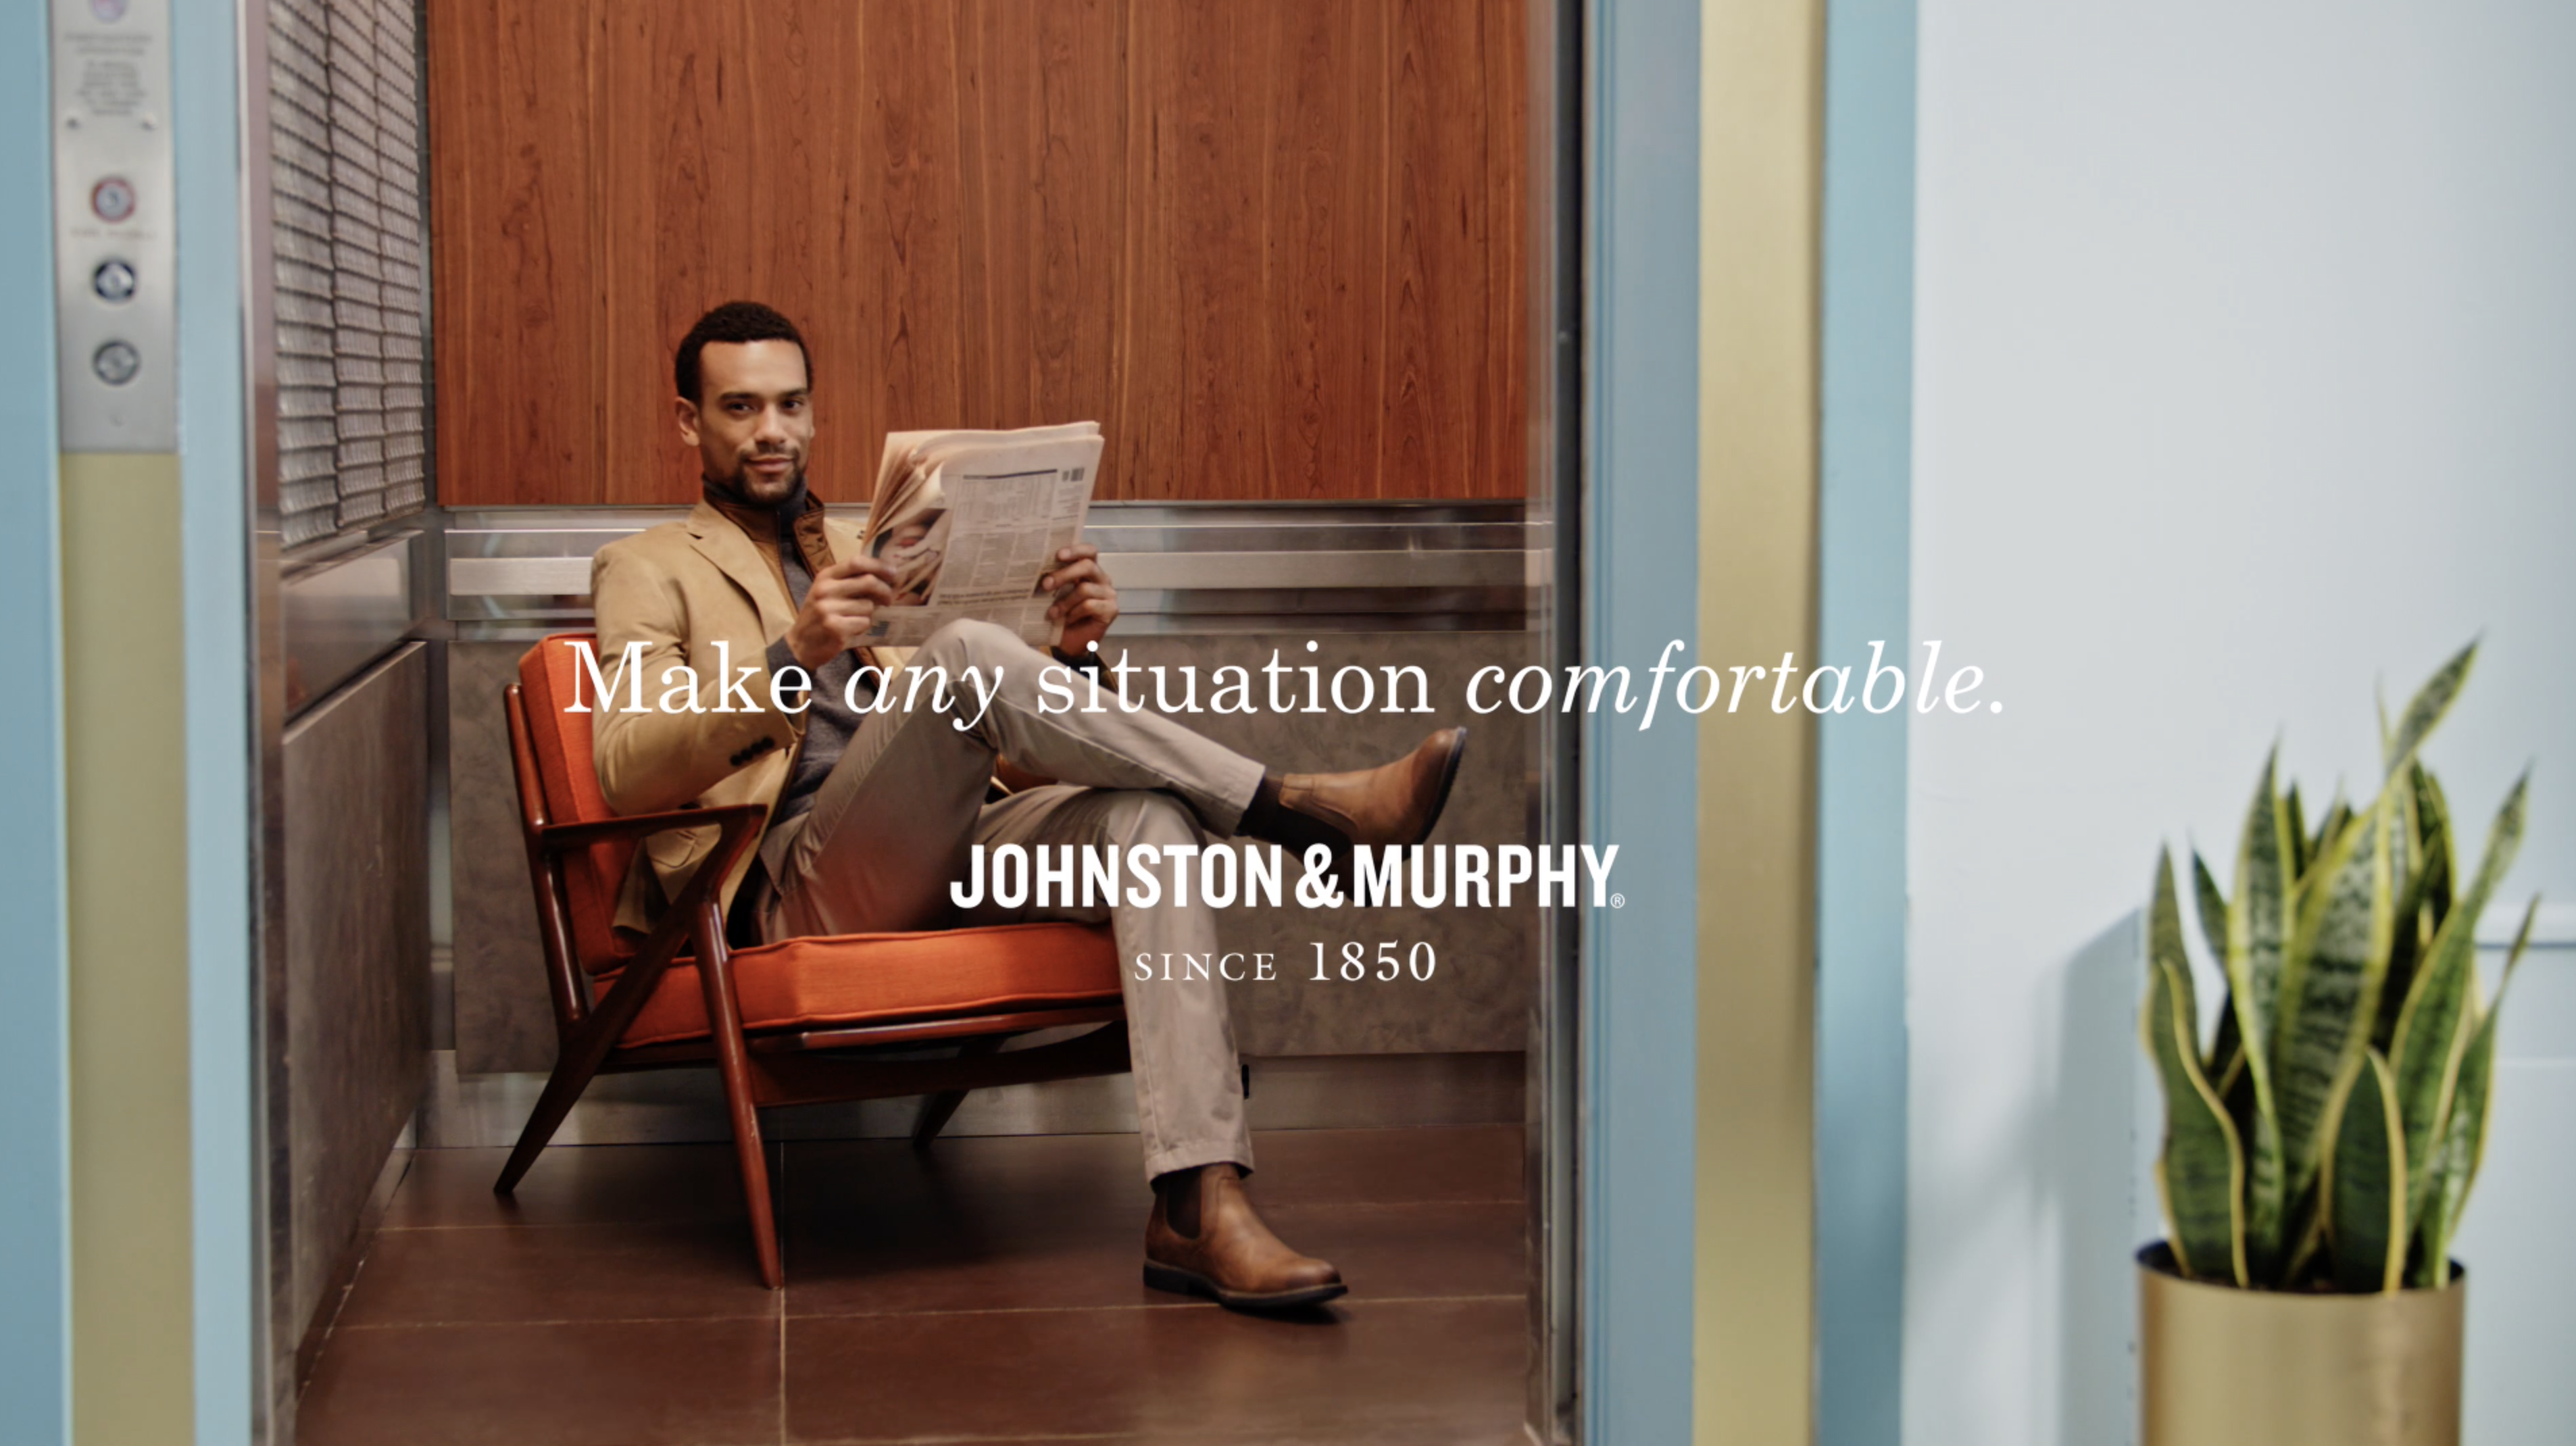 Johnston & Murphy Fall 2019 Ad Campaign by Yard